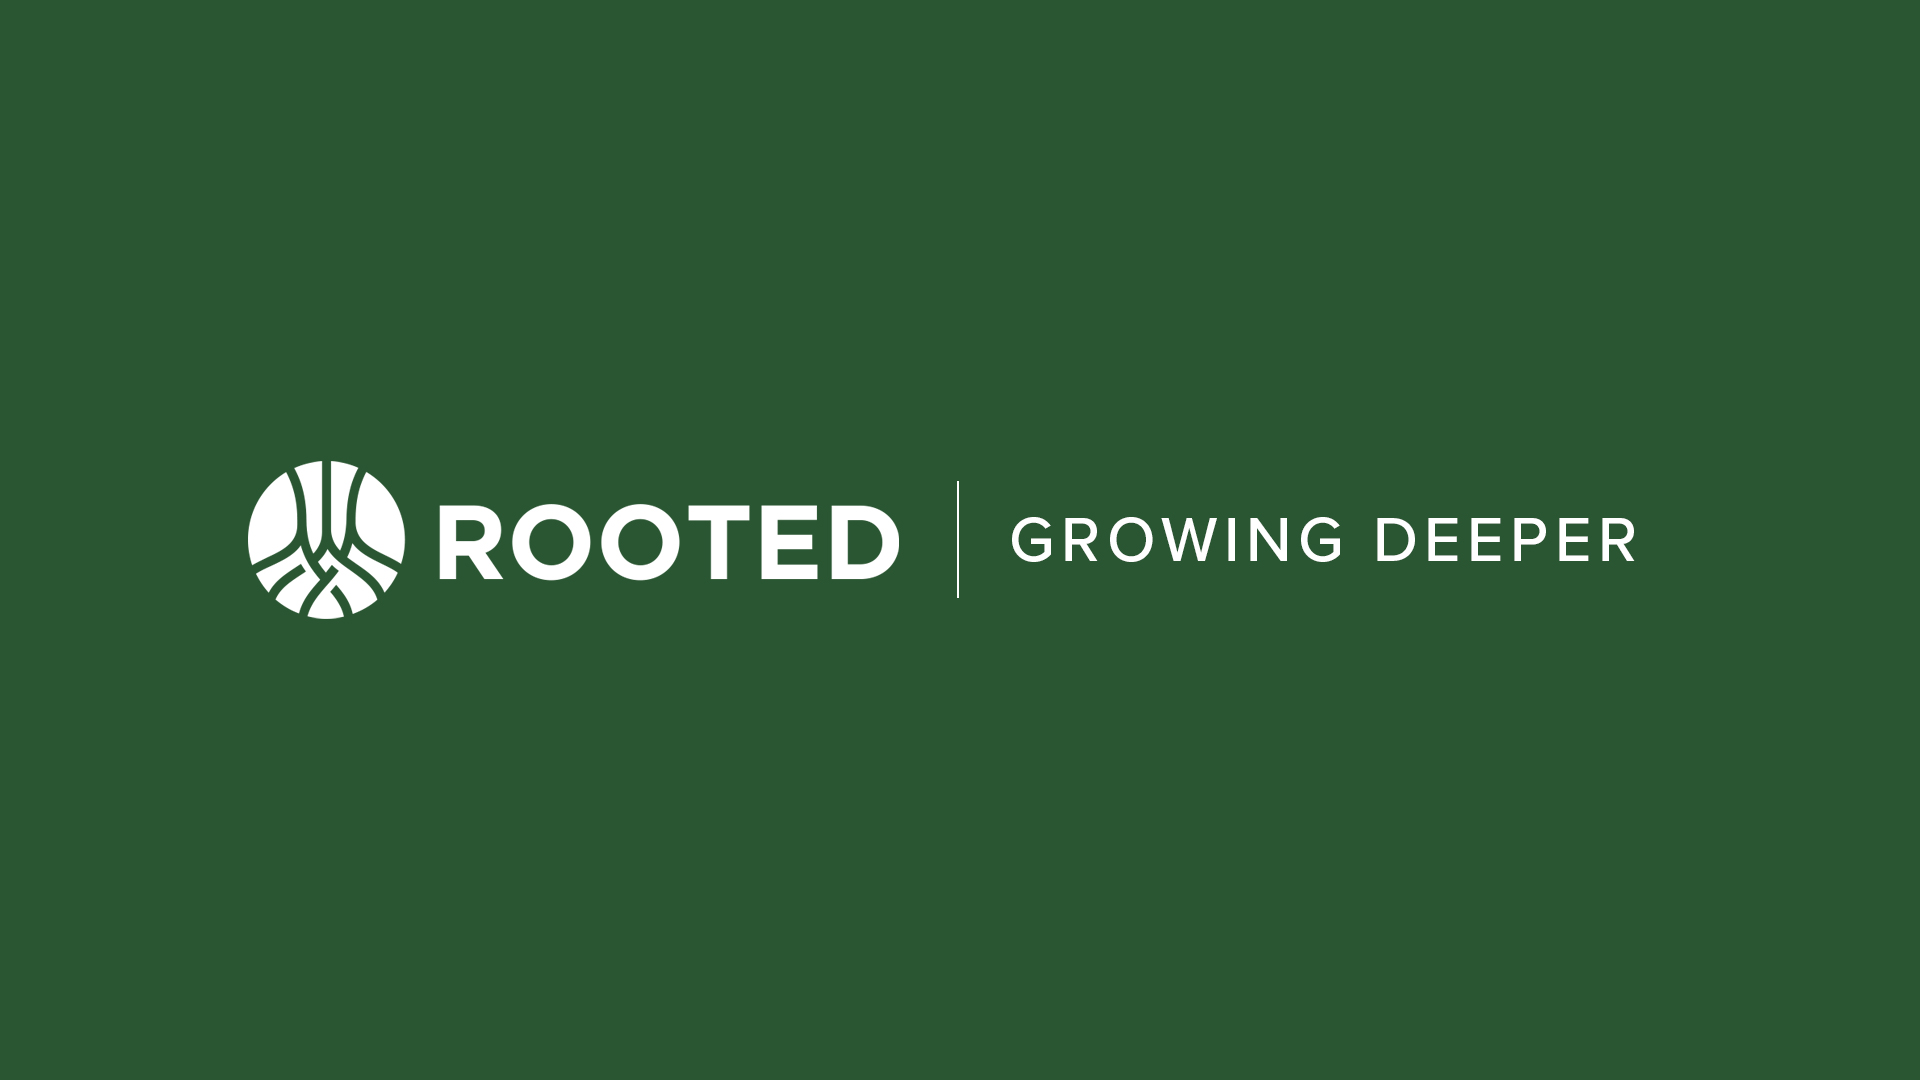 ROOTED - Growing Deeper